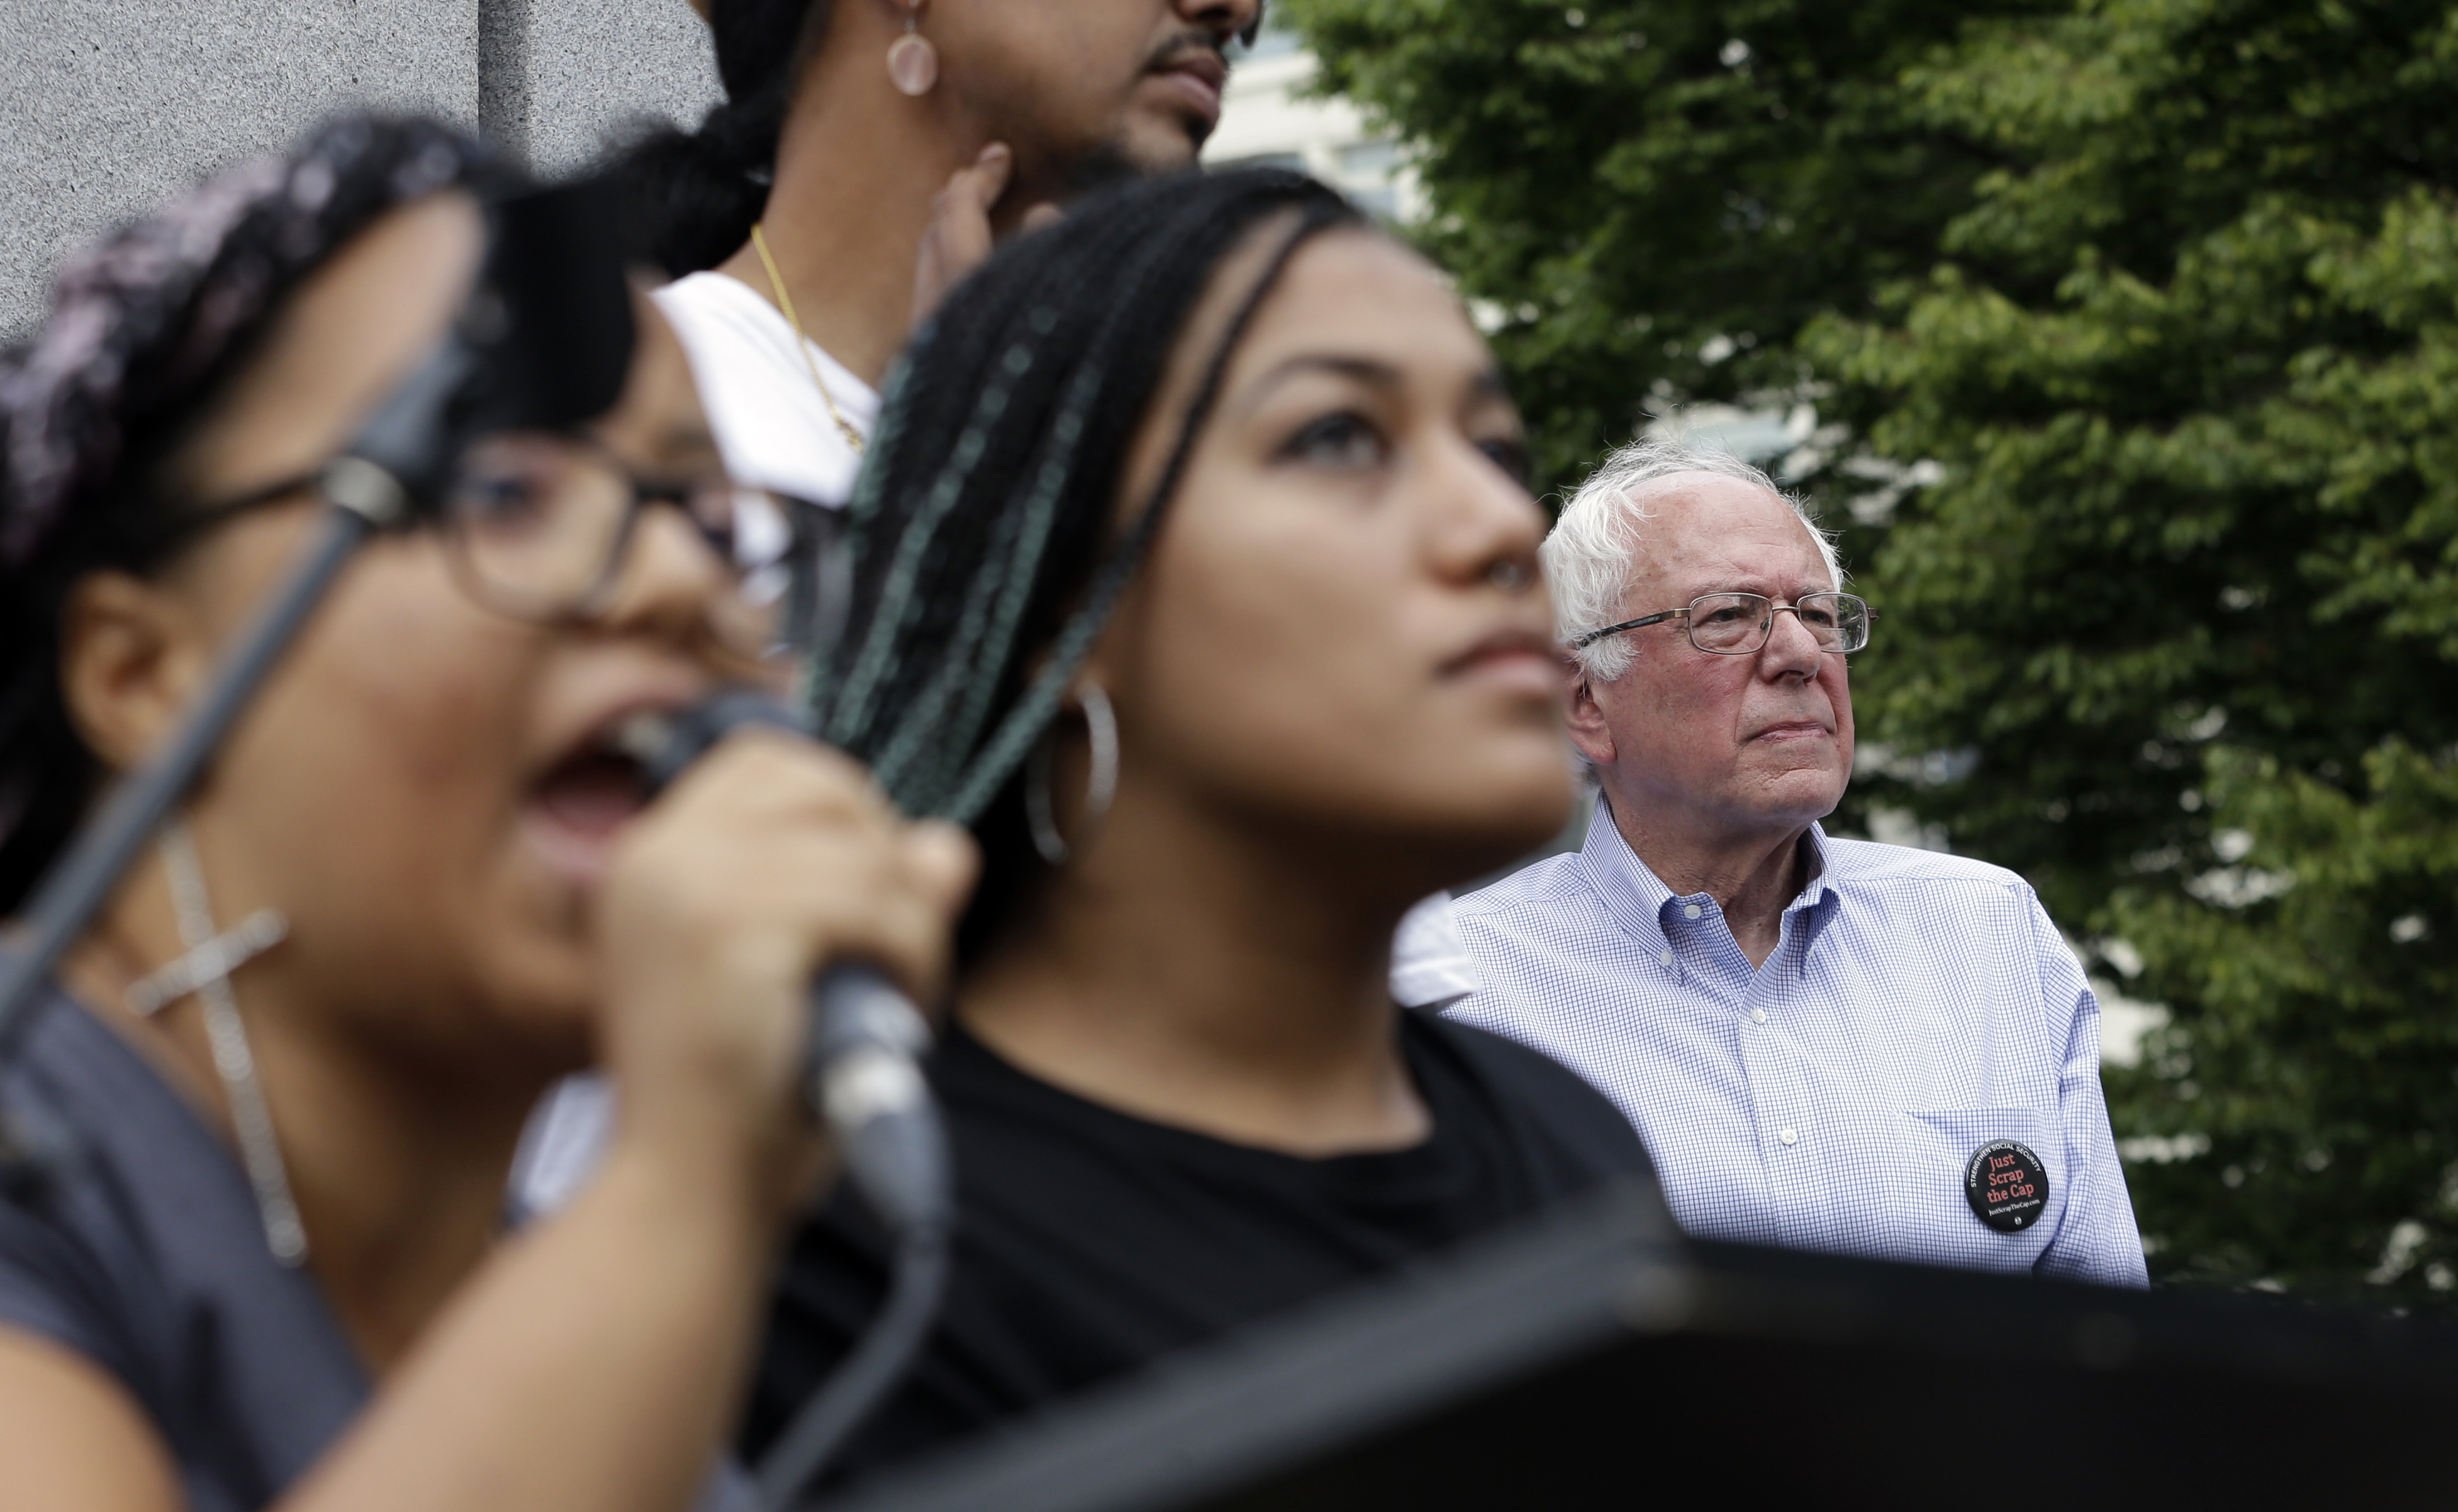 Marissa Johnson, left, speaks as Mara Jacqueline Willaford stands with her and Democratic presidential candidate Sen. Bernie Sanders, I-Vt., stands nearby as the two women take over the microphone at a rally on Aug. 8, 2015, in downtown Seattle.